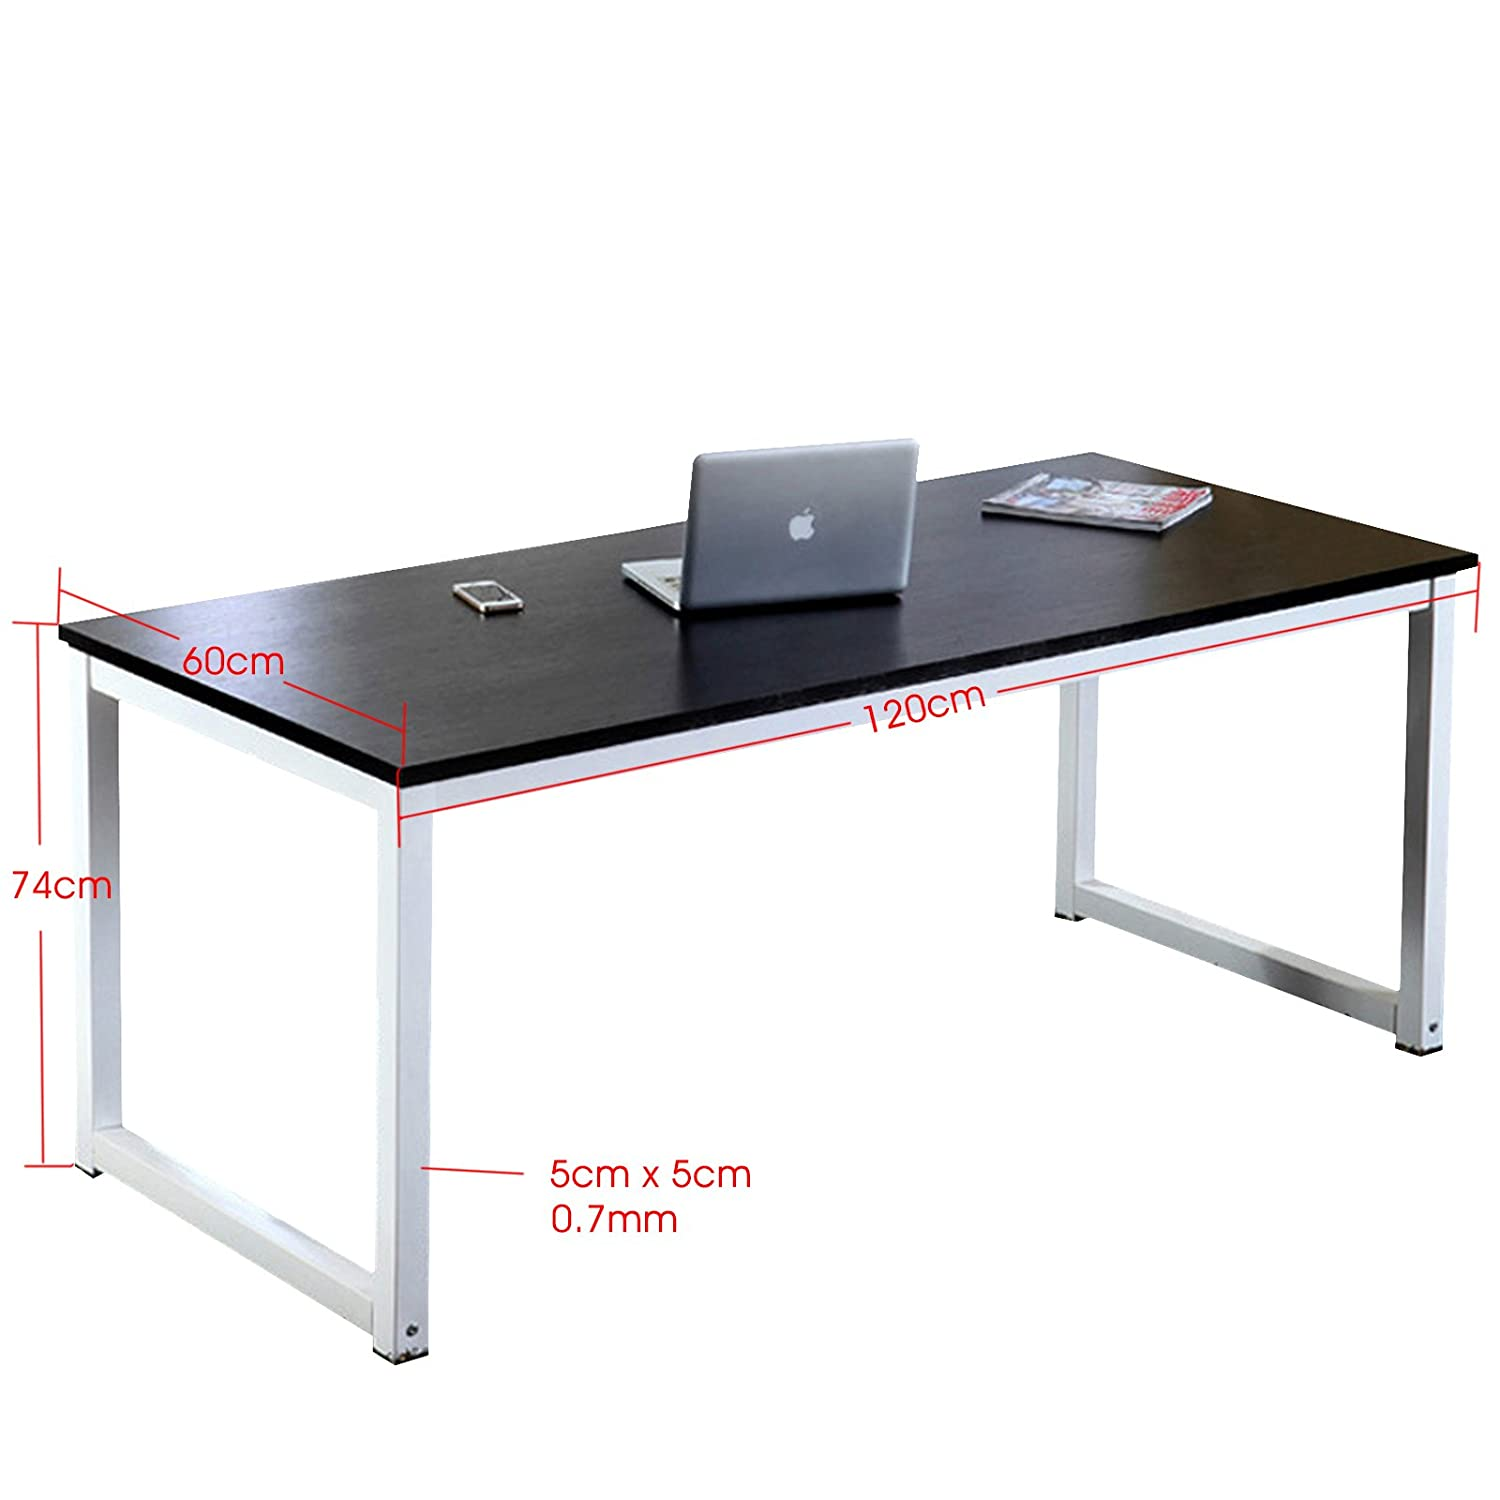 Very Impressive portraiture of  Tables > See more Office Computer Laptop Wooden Desk Study Table with #9A3136 color and 1500x1500 pixels